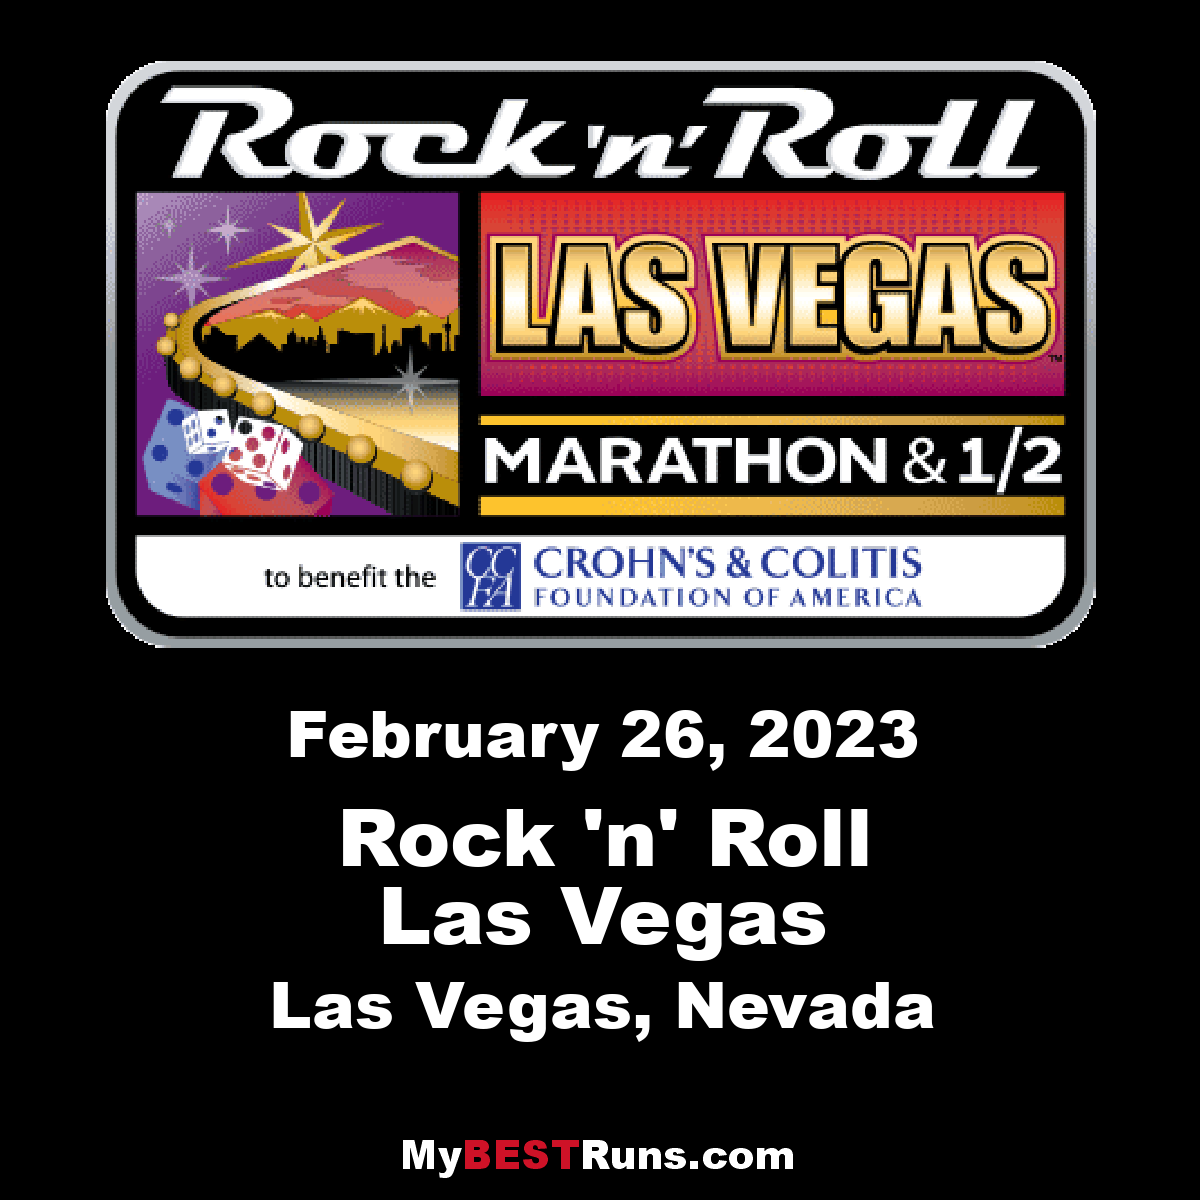 Rock 'n' Roll Las Vegas